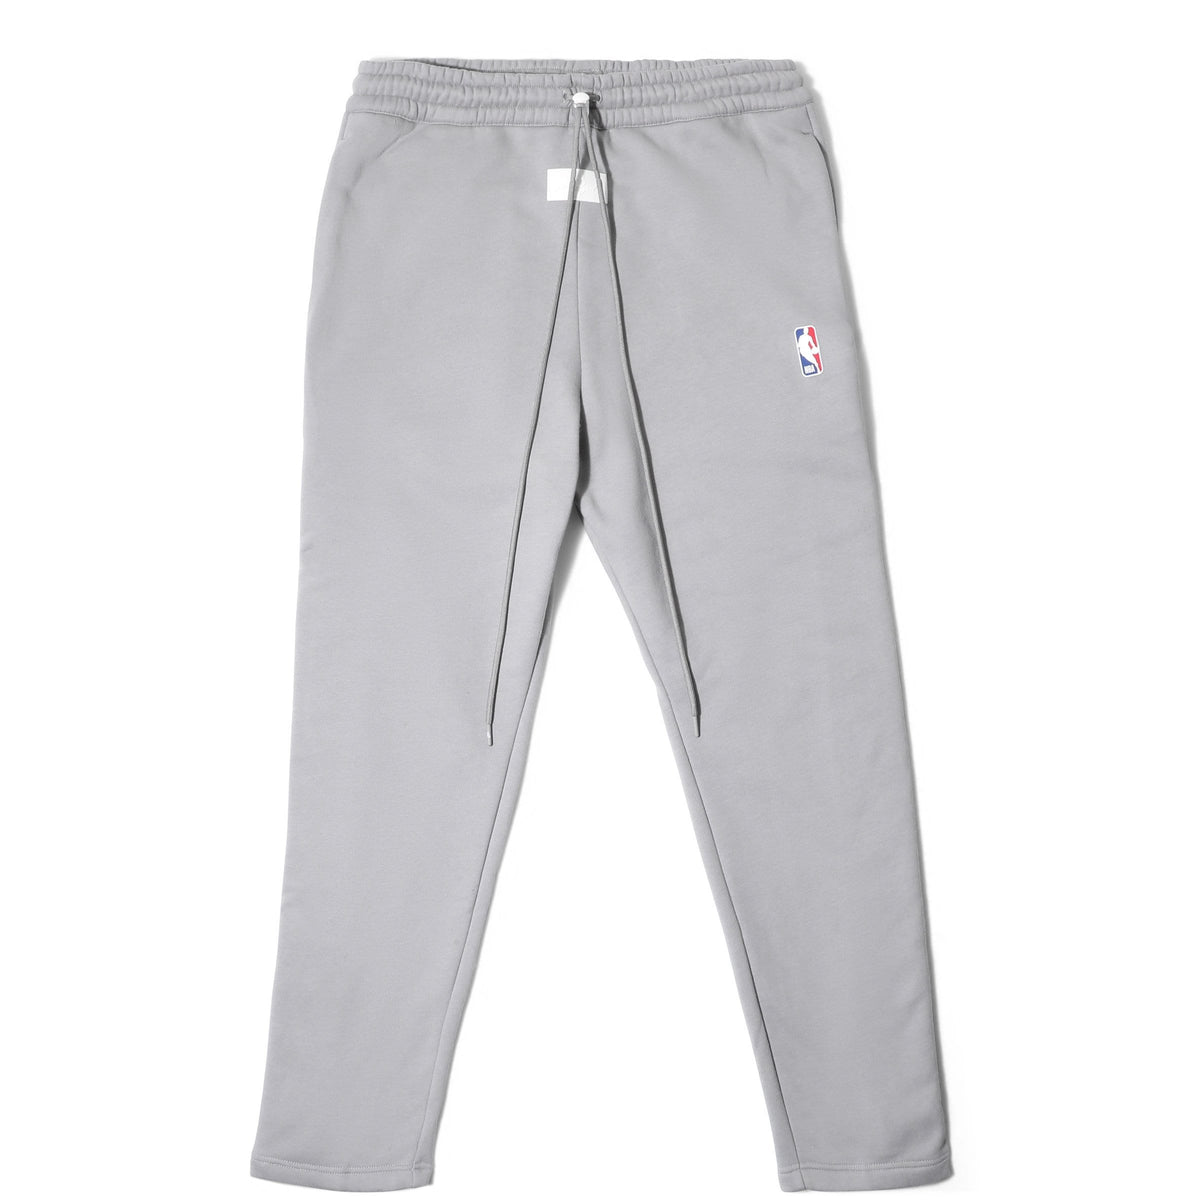 x Fear of God WARM UP PANT BV5791 003